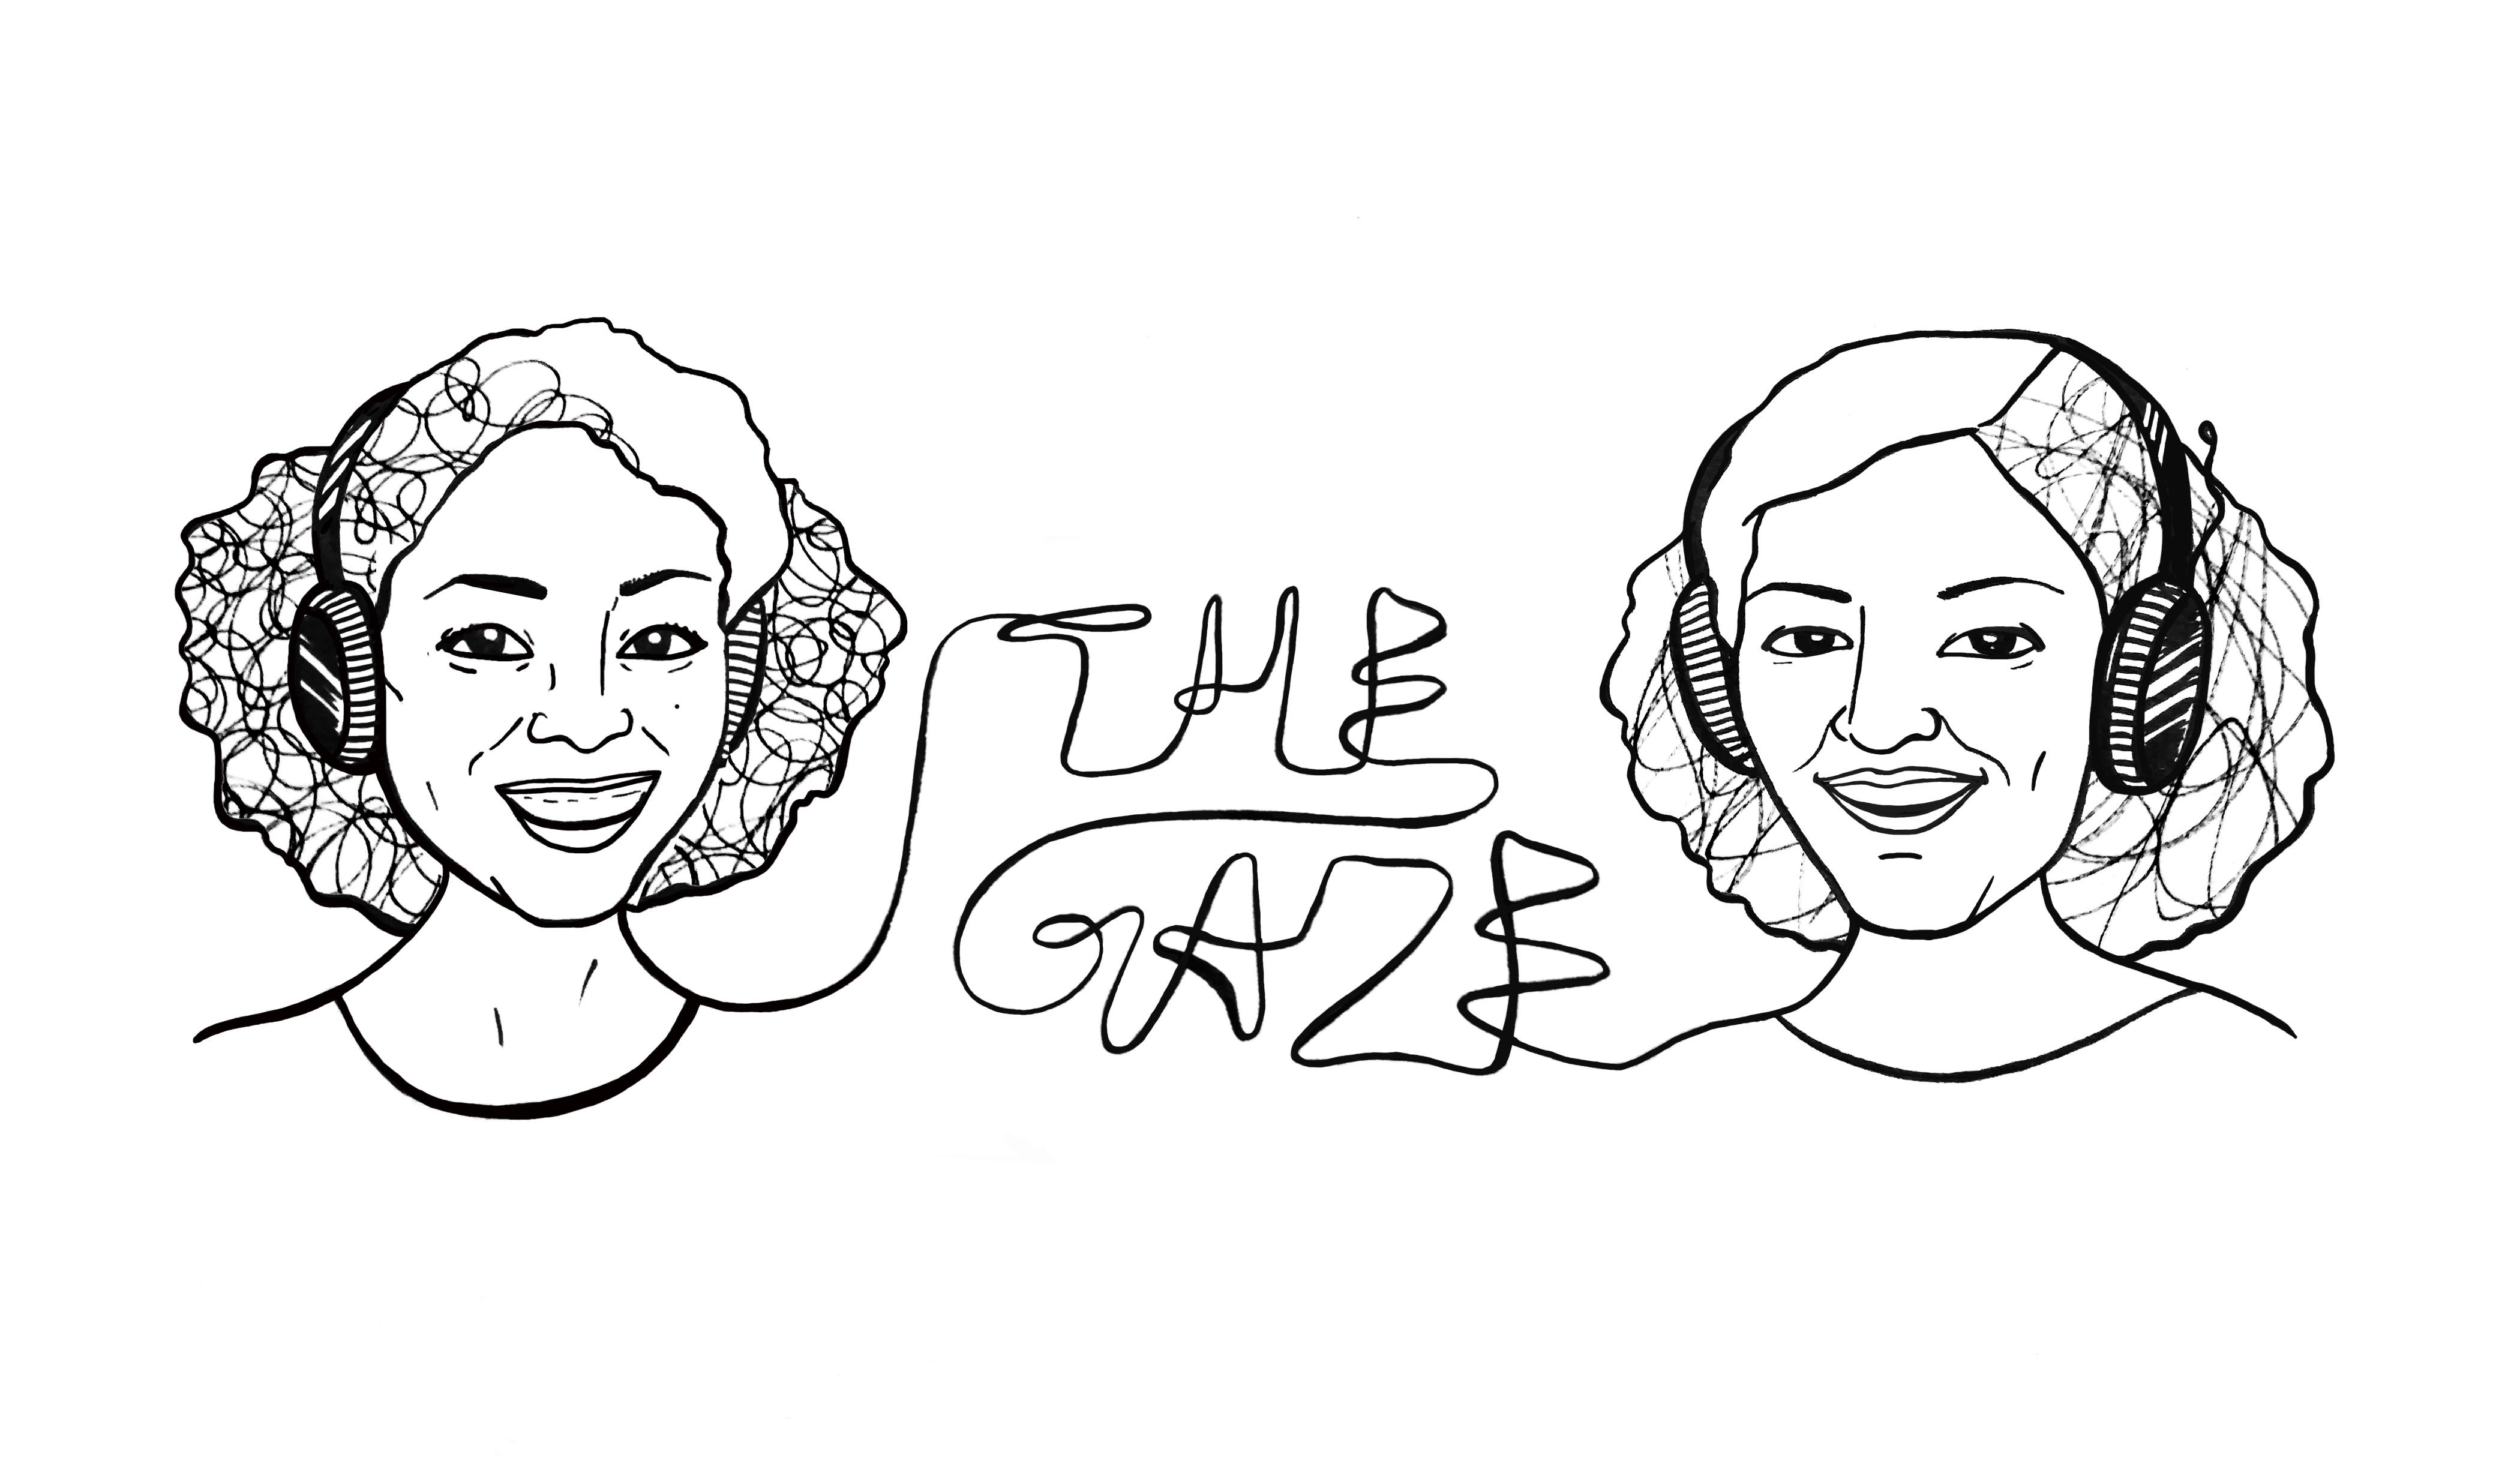 Introducing Season Two of The Gaze Podcast - this is worldtown